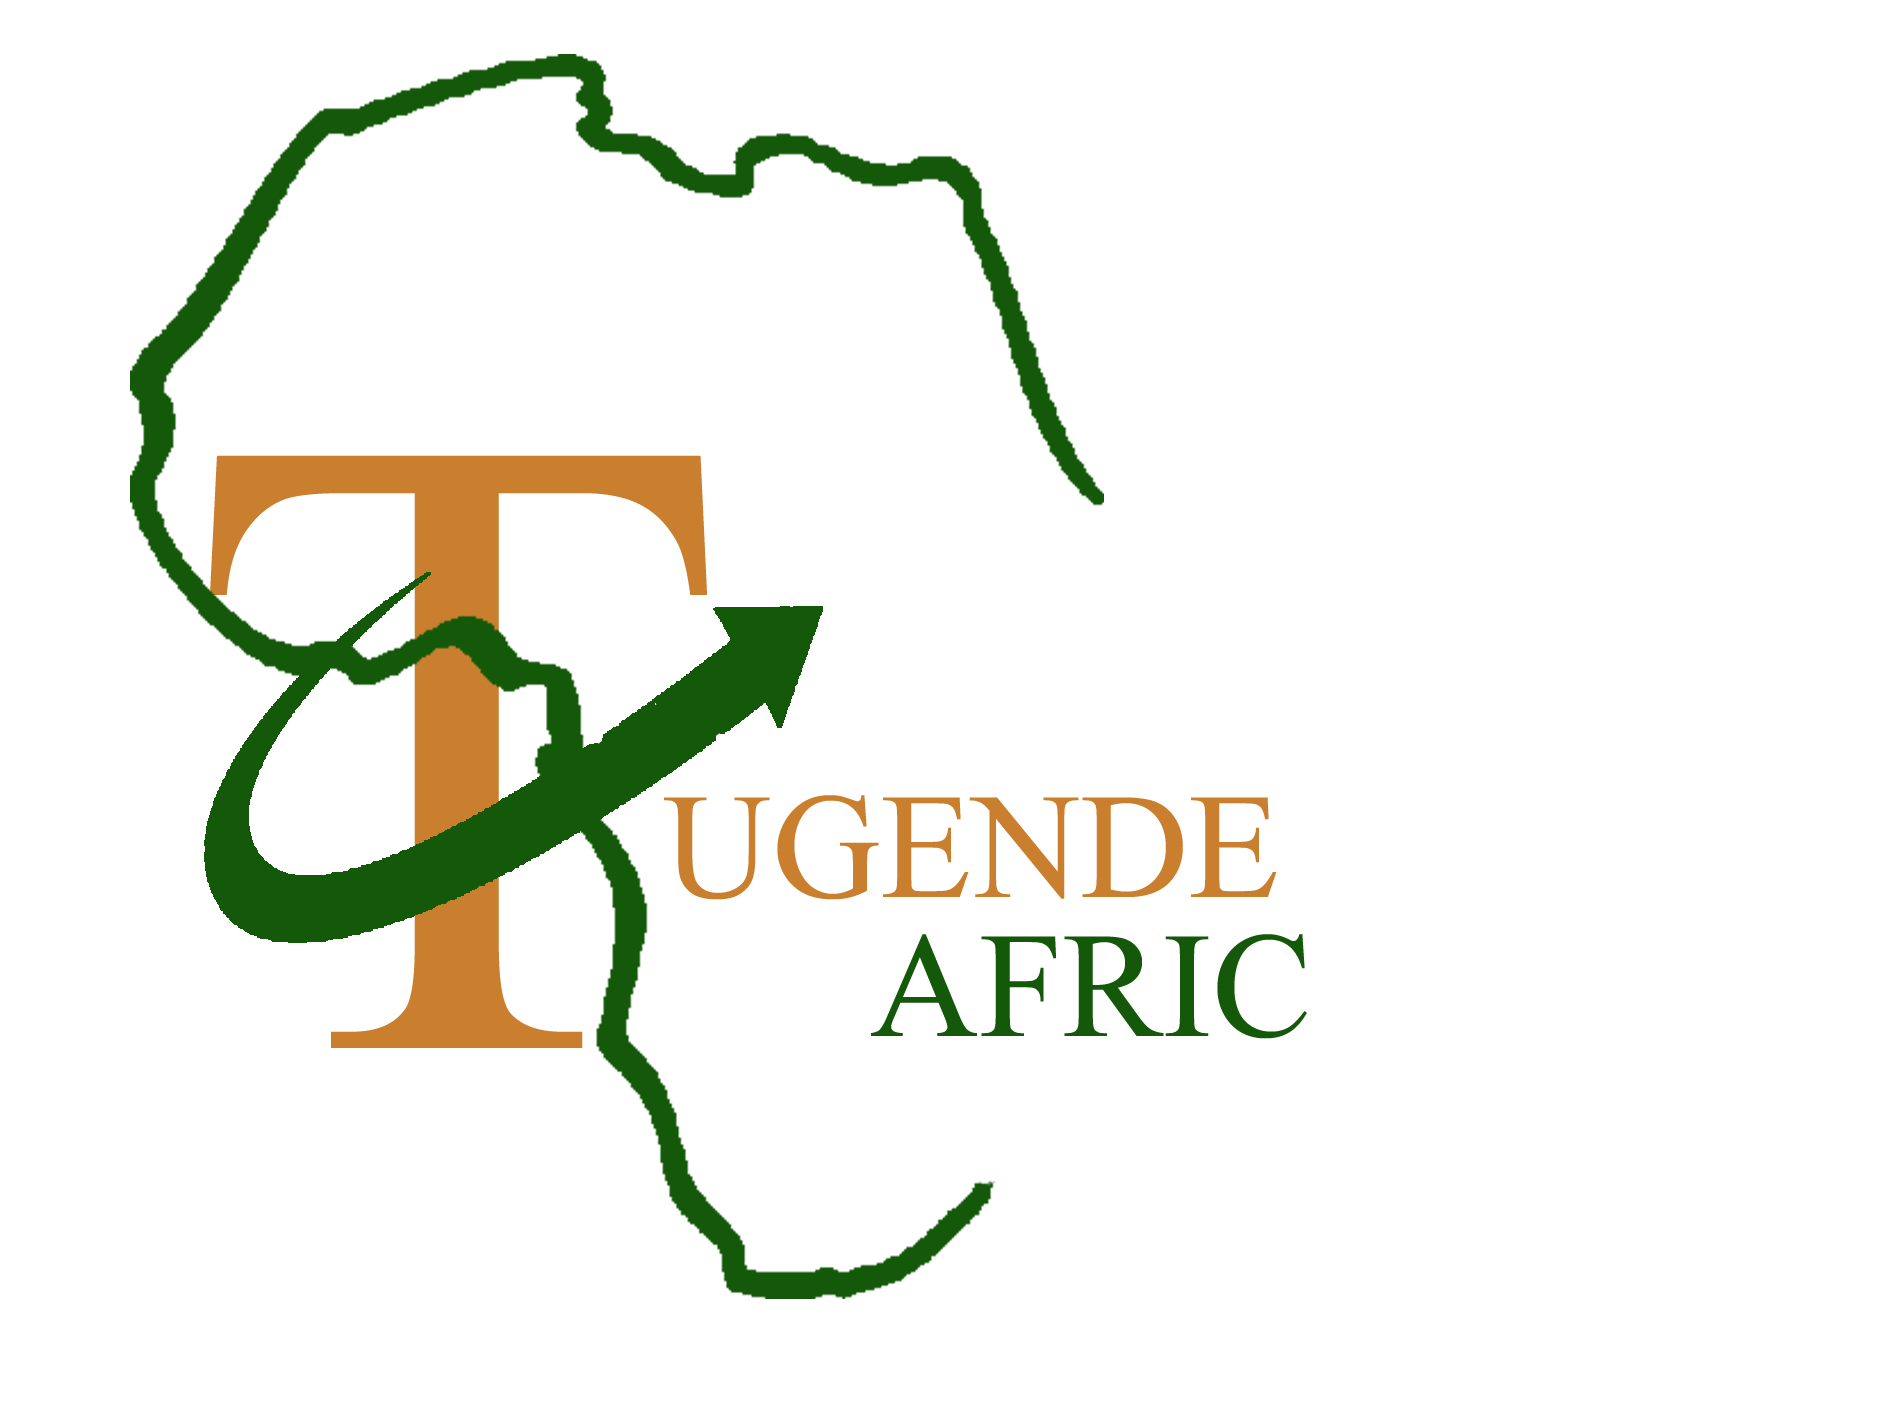 Tugende Afric